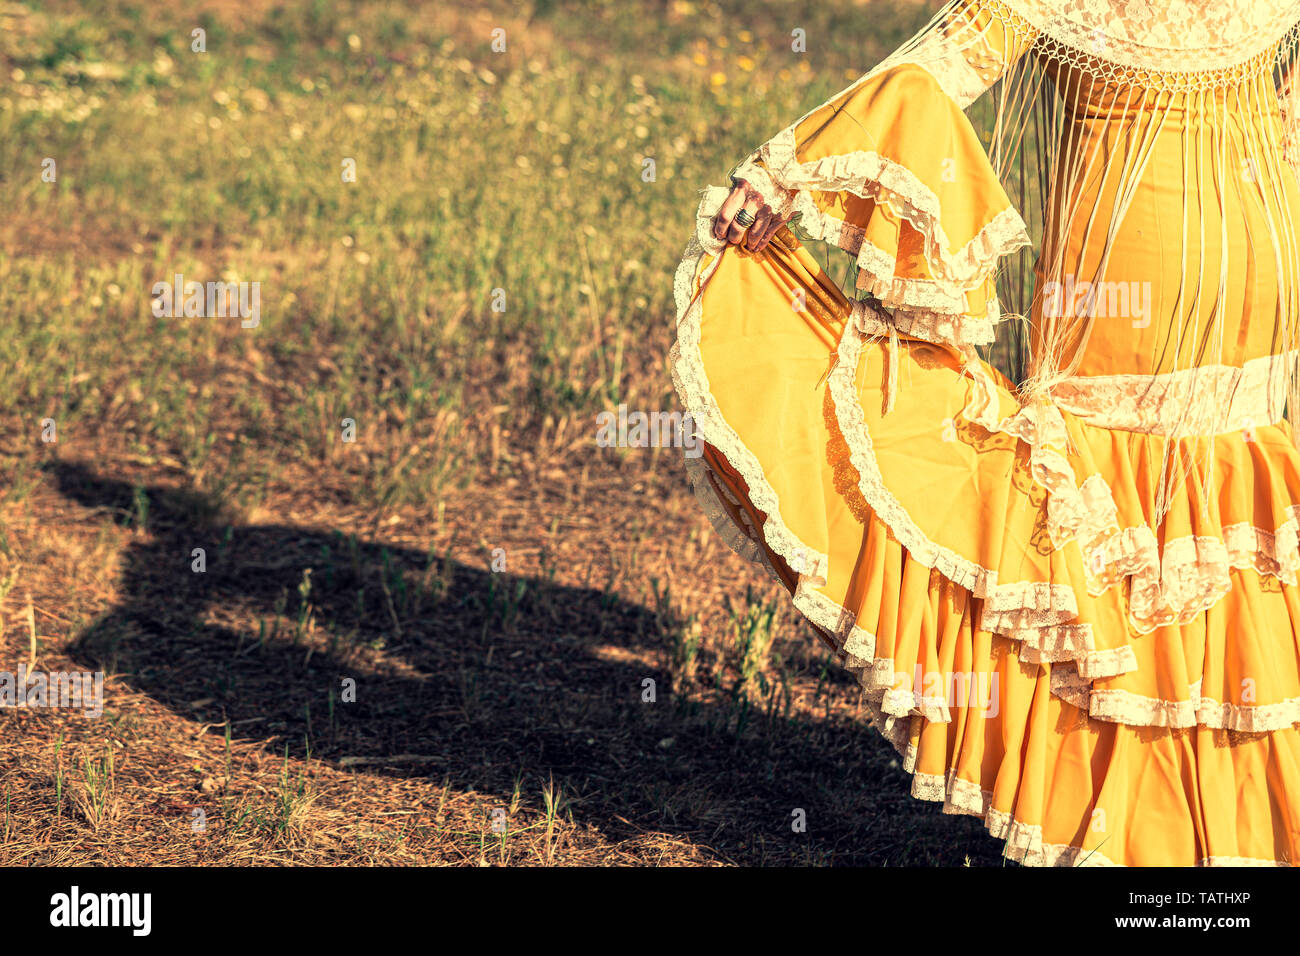 Shadow of woman on the floor dressed in yellow flamenco dress with manila shawl and fringes - Stock Image